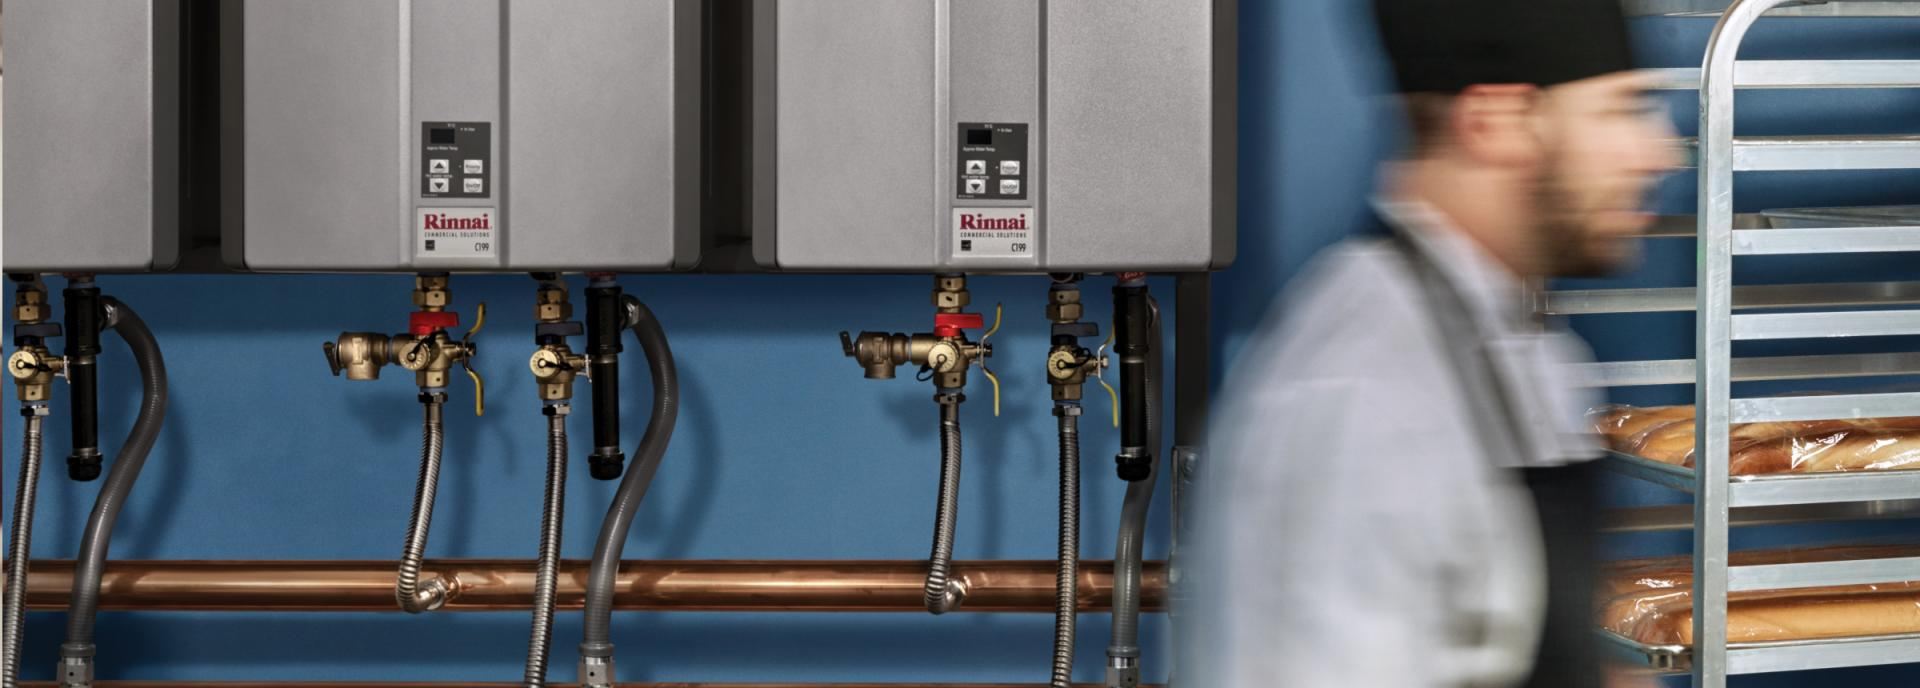 Commercial Water Heating | Rinnai America